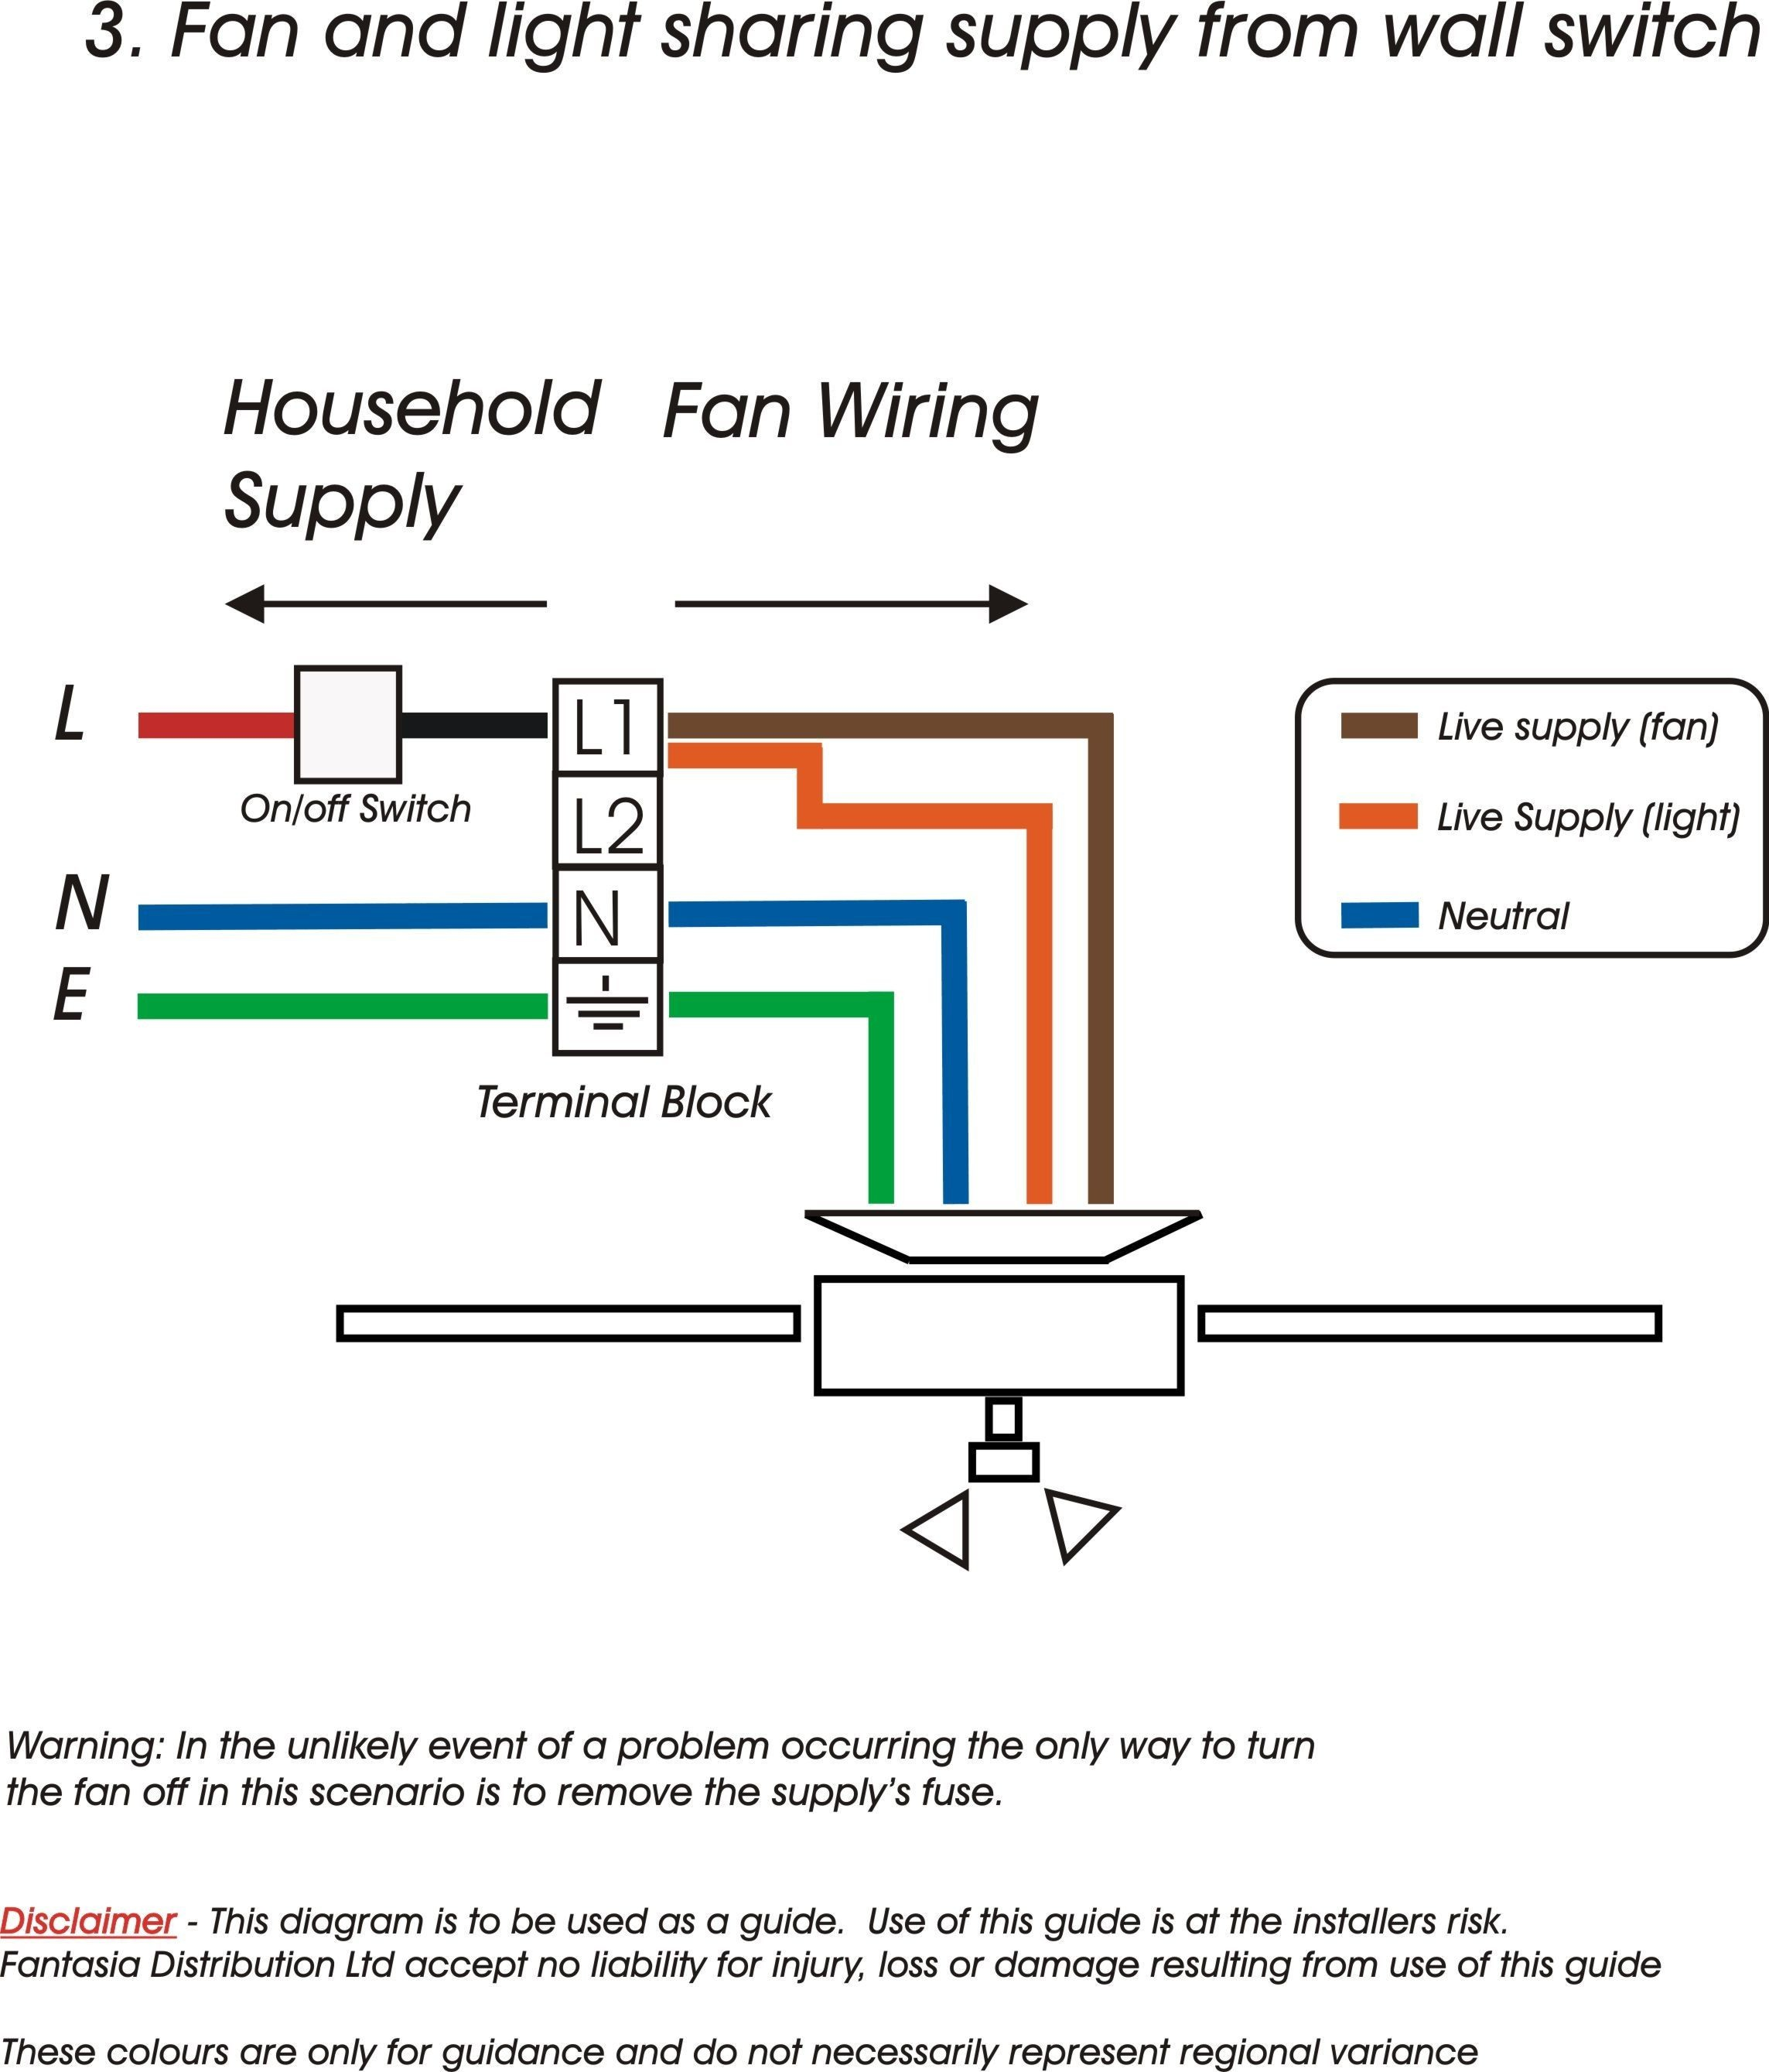 ze 208s wiring diagram zing ear ze 208d wiring diagram - wiring diagram #4